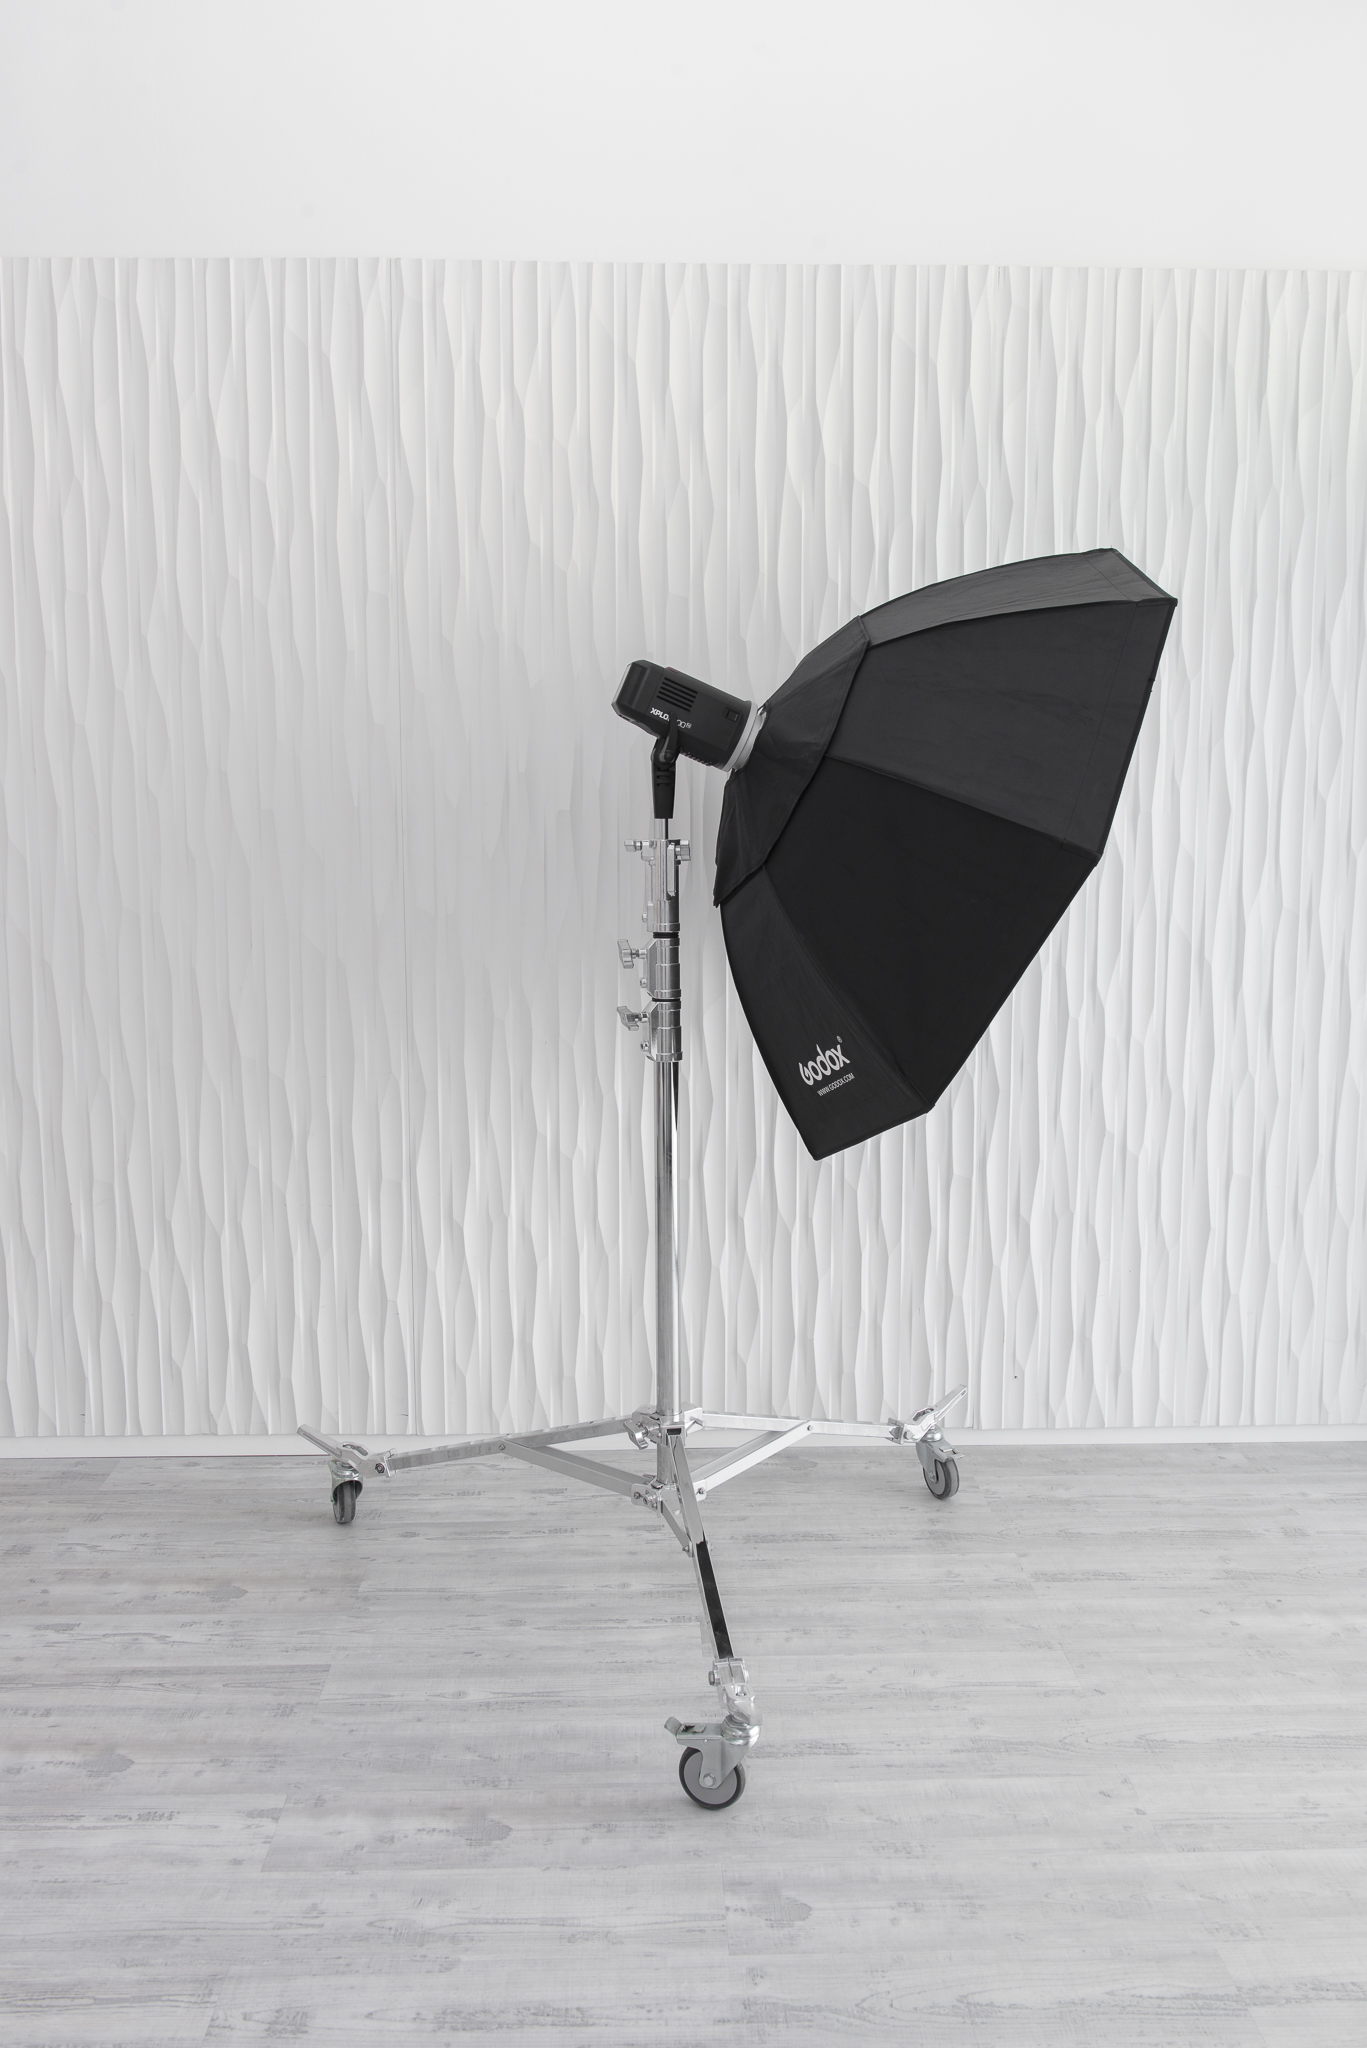 Mobile Rolling Light Stands